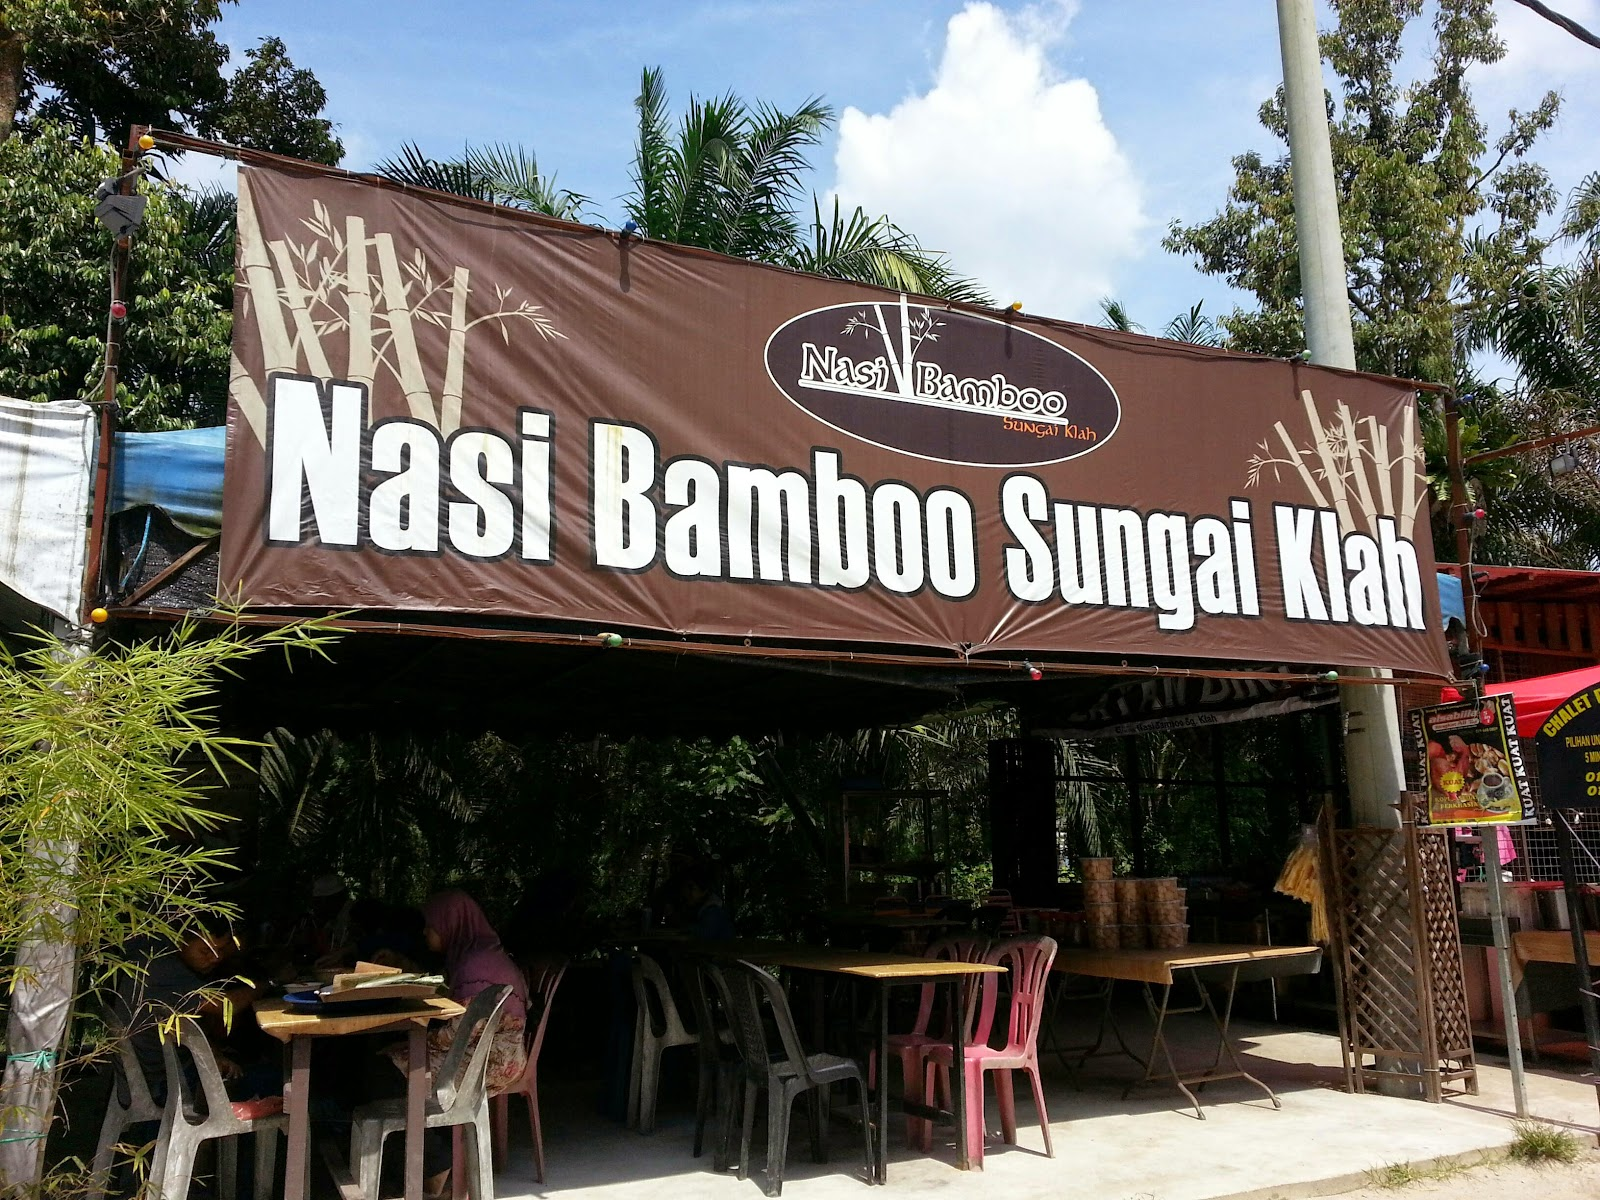 Sungai klah hot springs - This Is The Stall Google Images